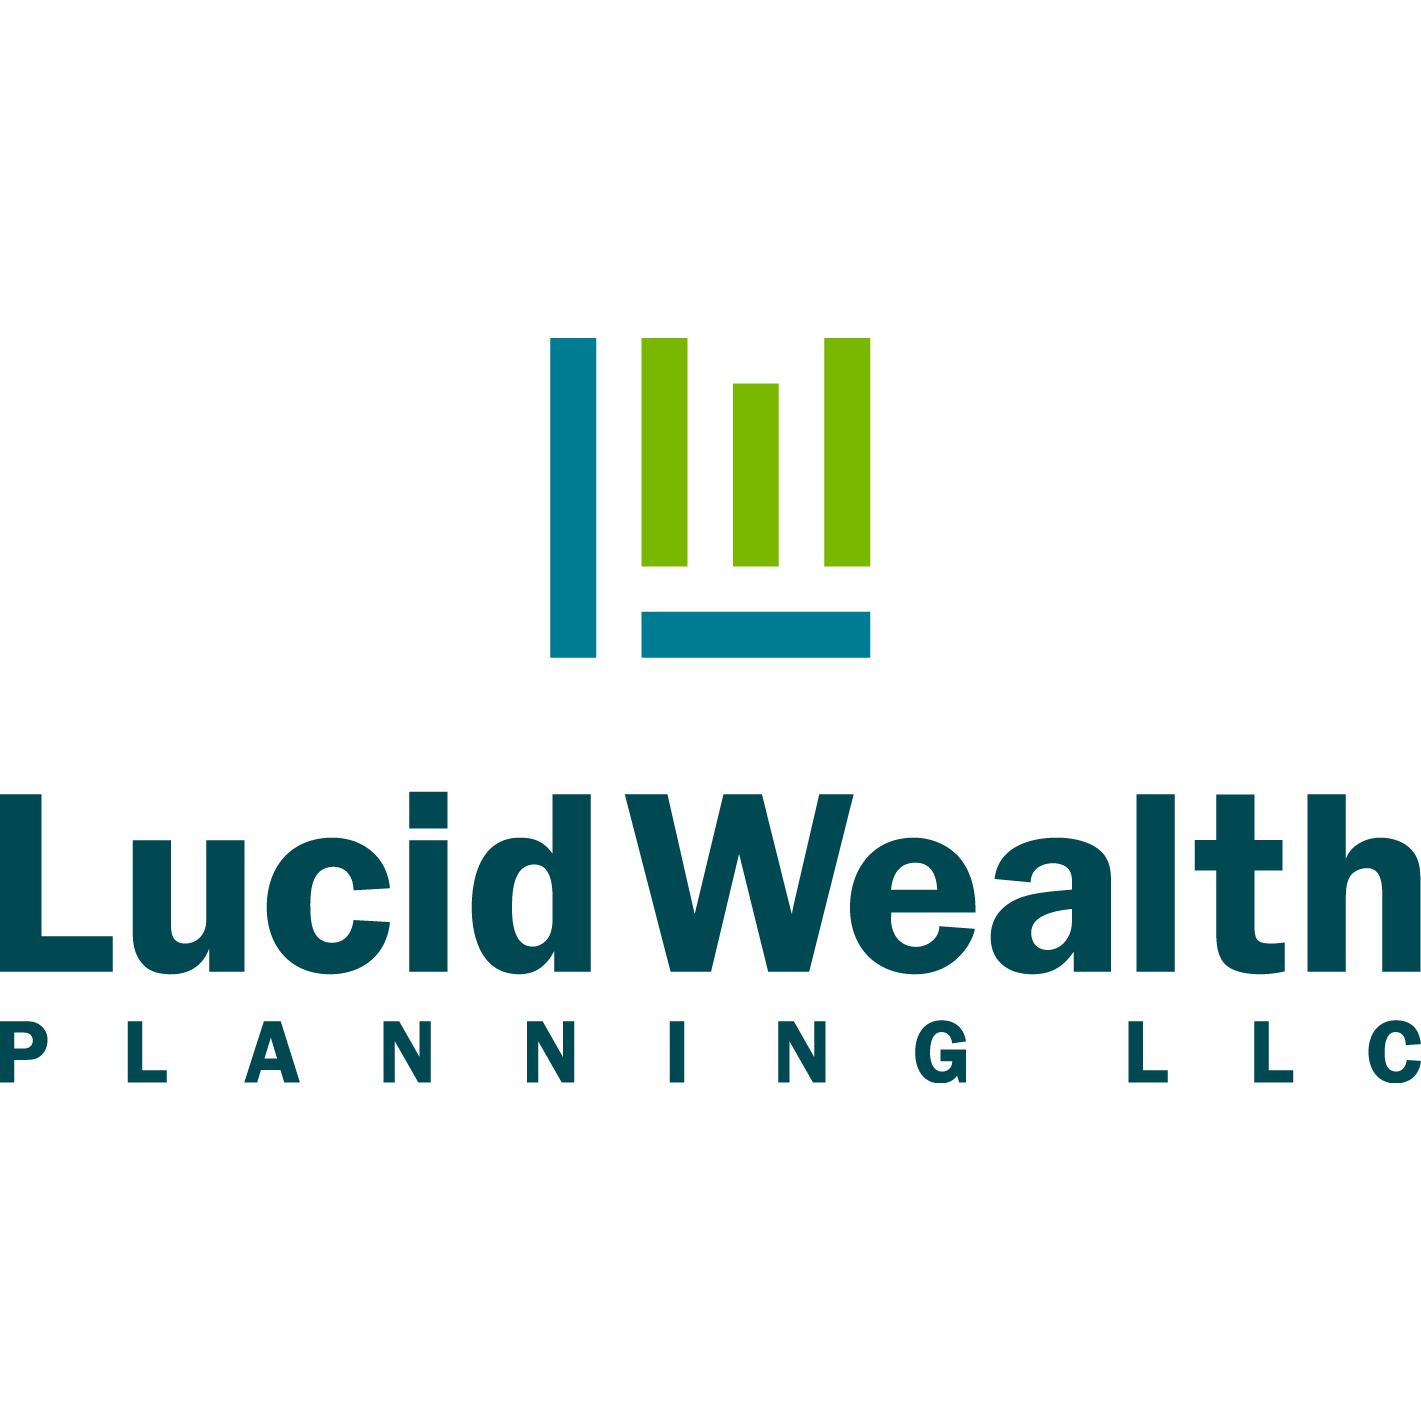 Lucid Wealth Planning LLC